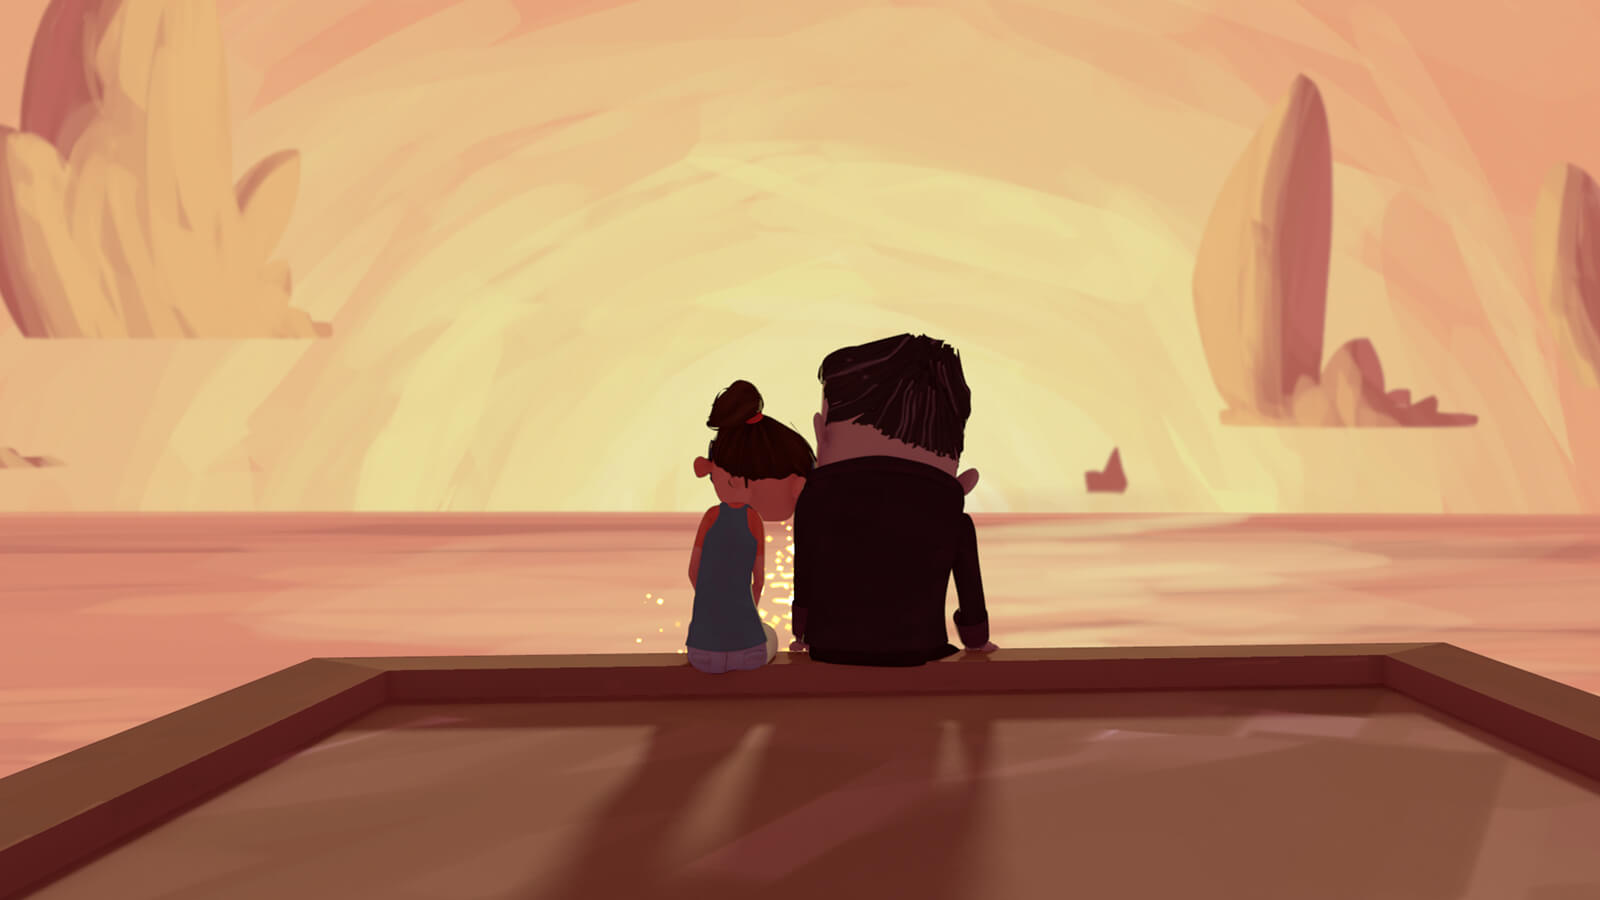 From behind, a girl rests her head on the shoulder of a man as they sit on an edge looking out at an orange sea and sky